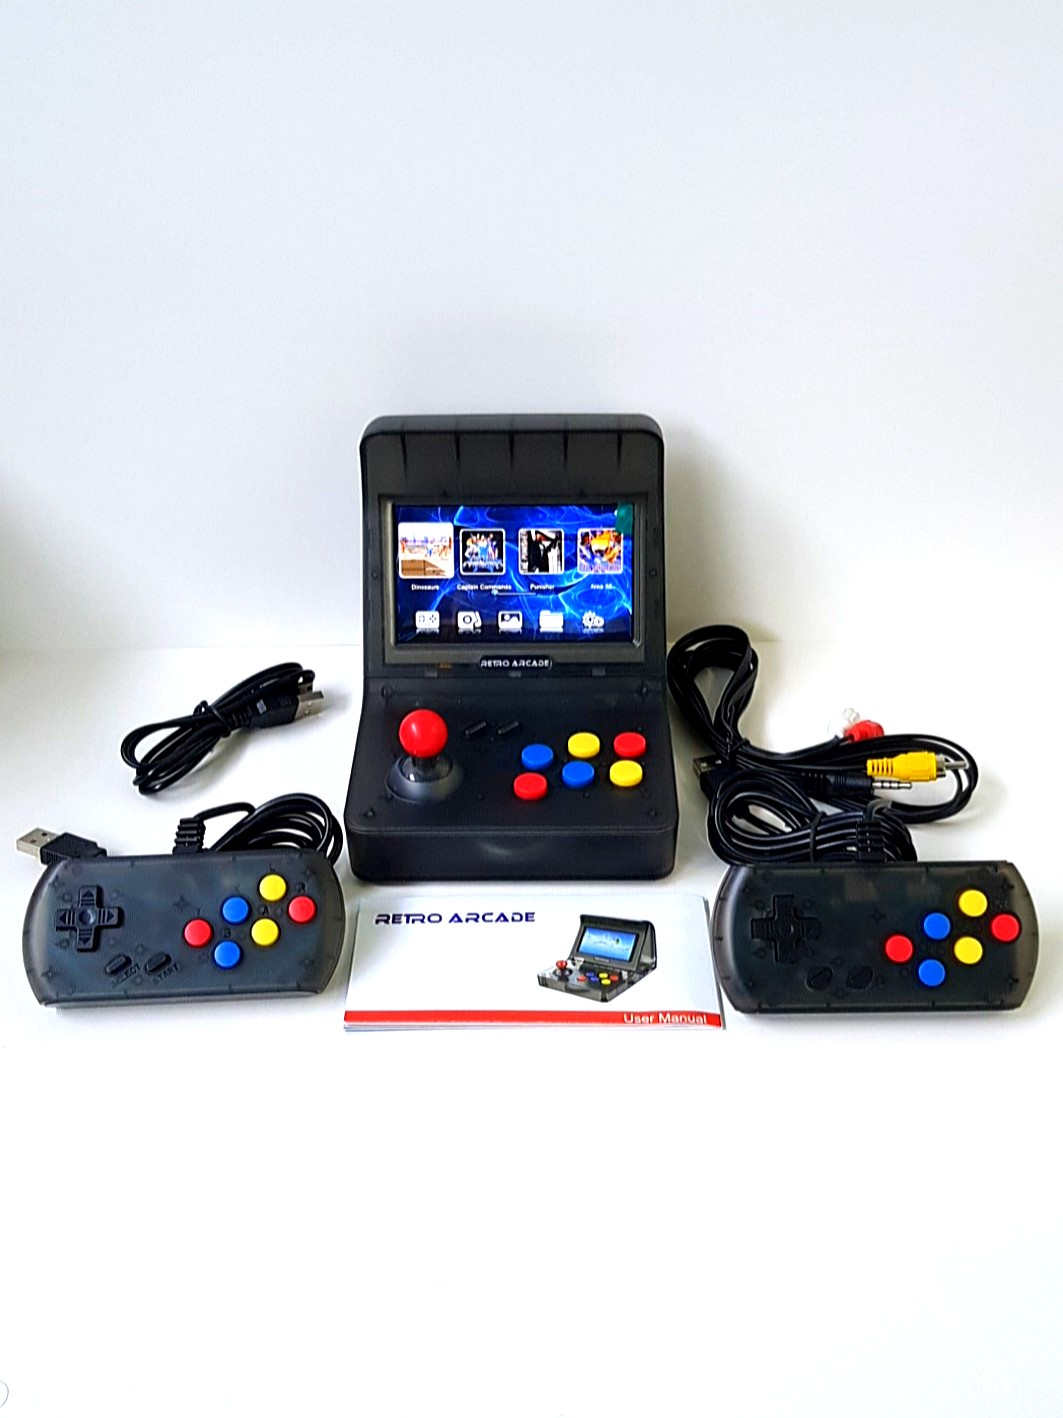 RETRO ARCADE, Toys & Games, Video Gaming, Consoles on Carousell